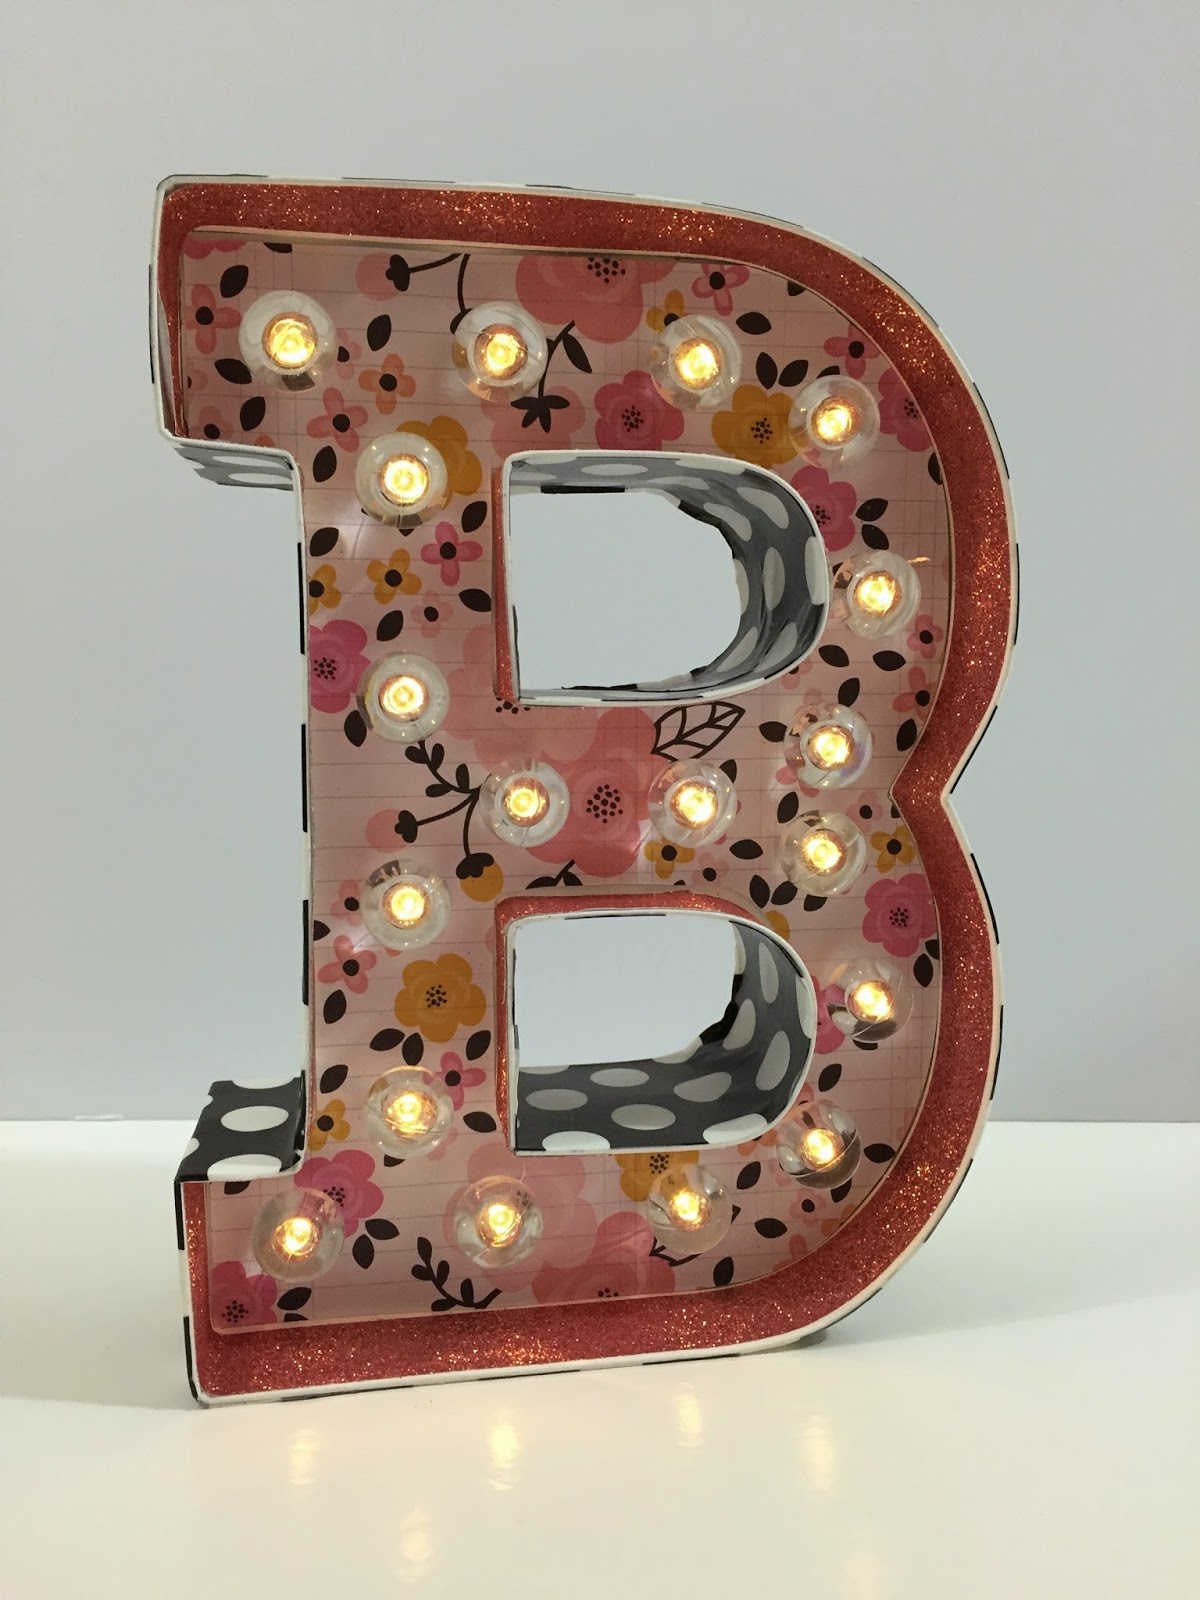 Mrs crafty adams heidi swapp marquee letter quotbquot for B marquee letter